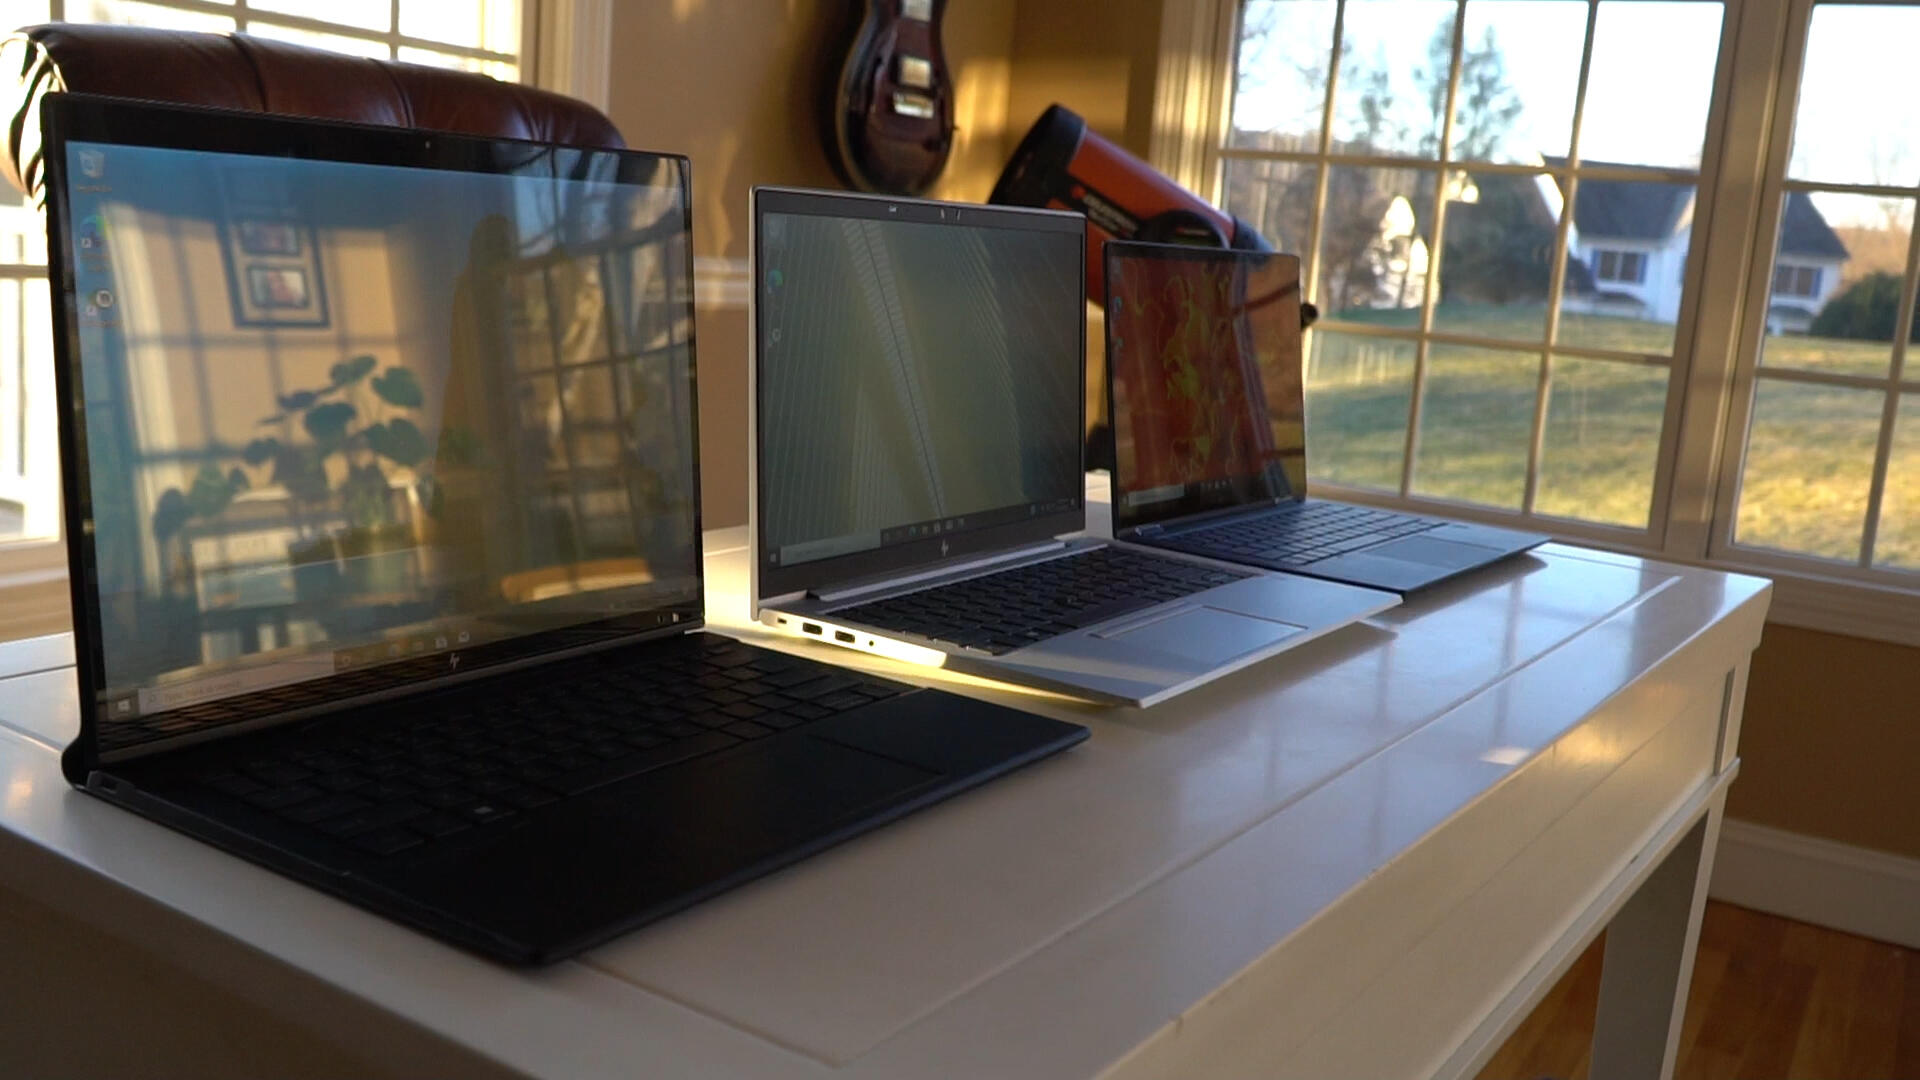 Video: HP's work laptops at CES 2021 are made for micro mobility